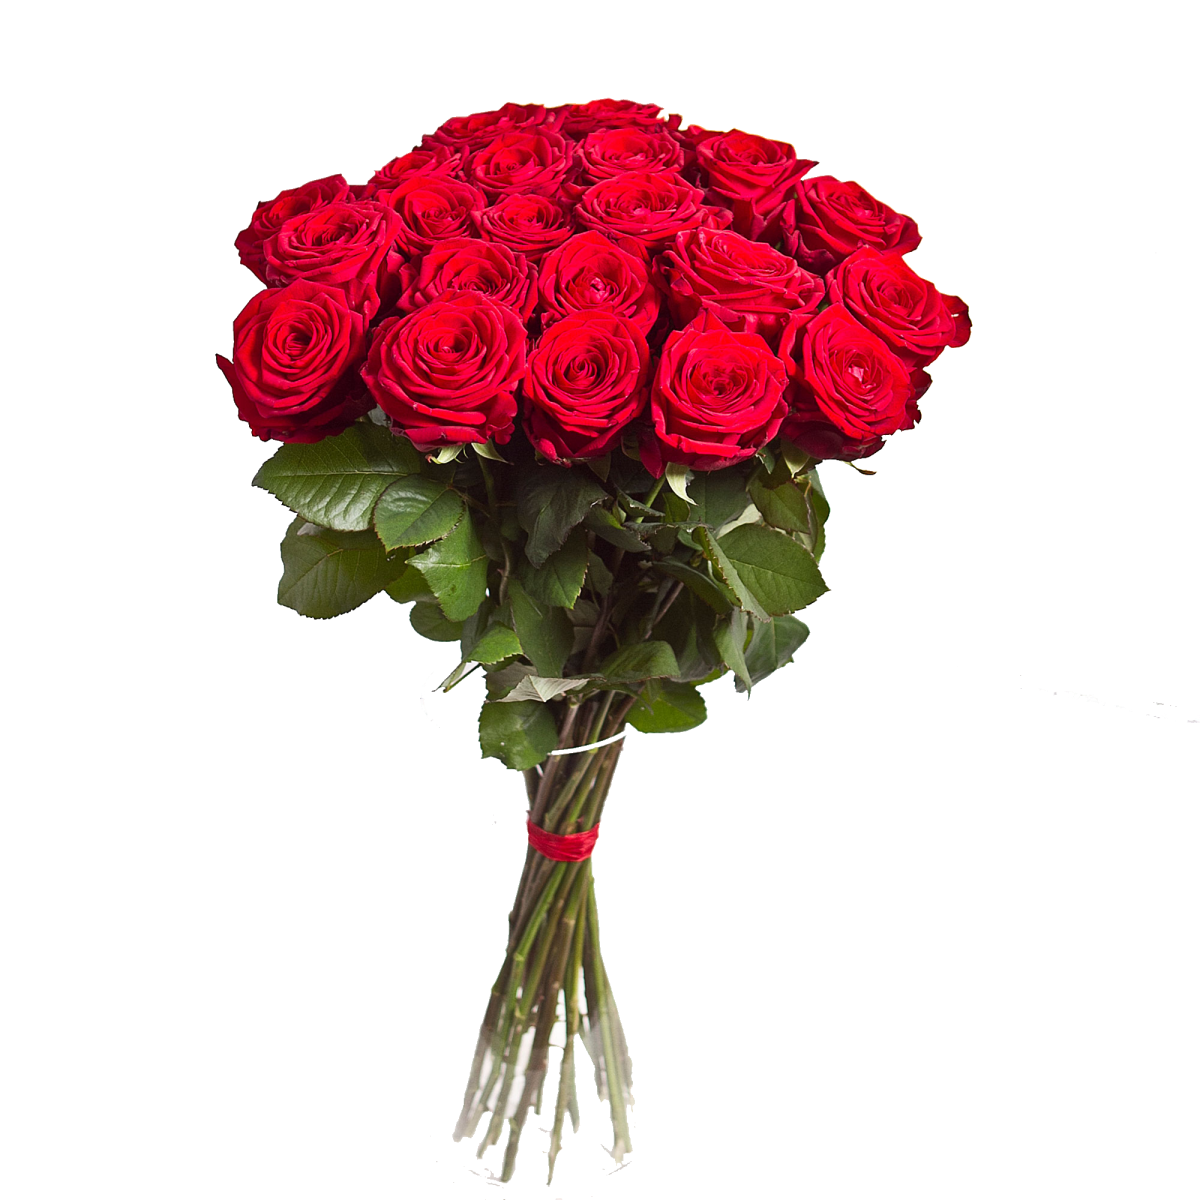 Rose Bouquet PNG Free Image.